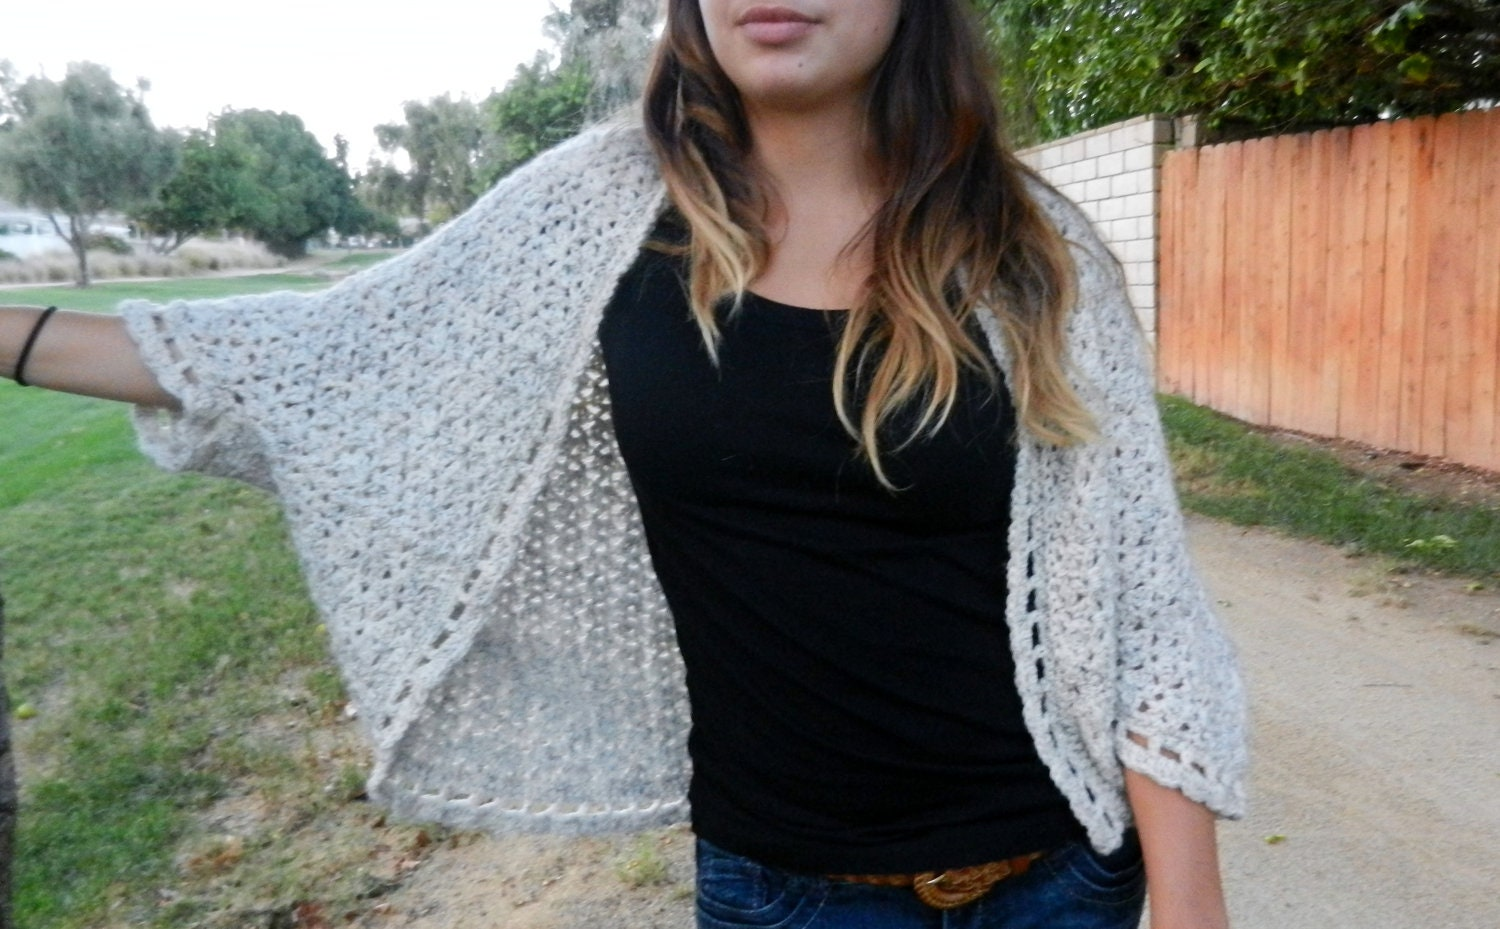 Crochet Shrug Cardigan Pattern: The Somerset Shrug Pattern